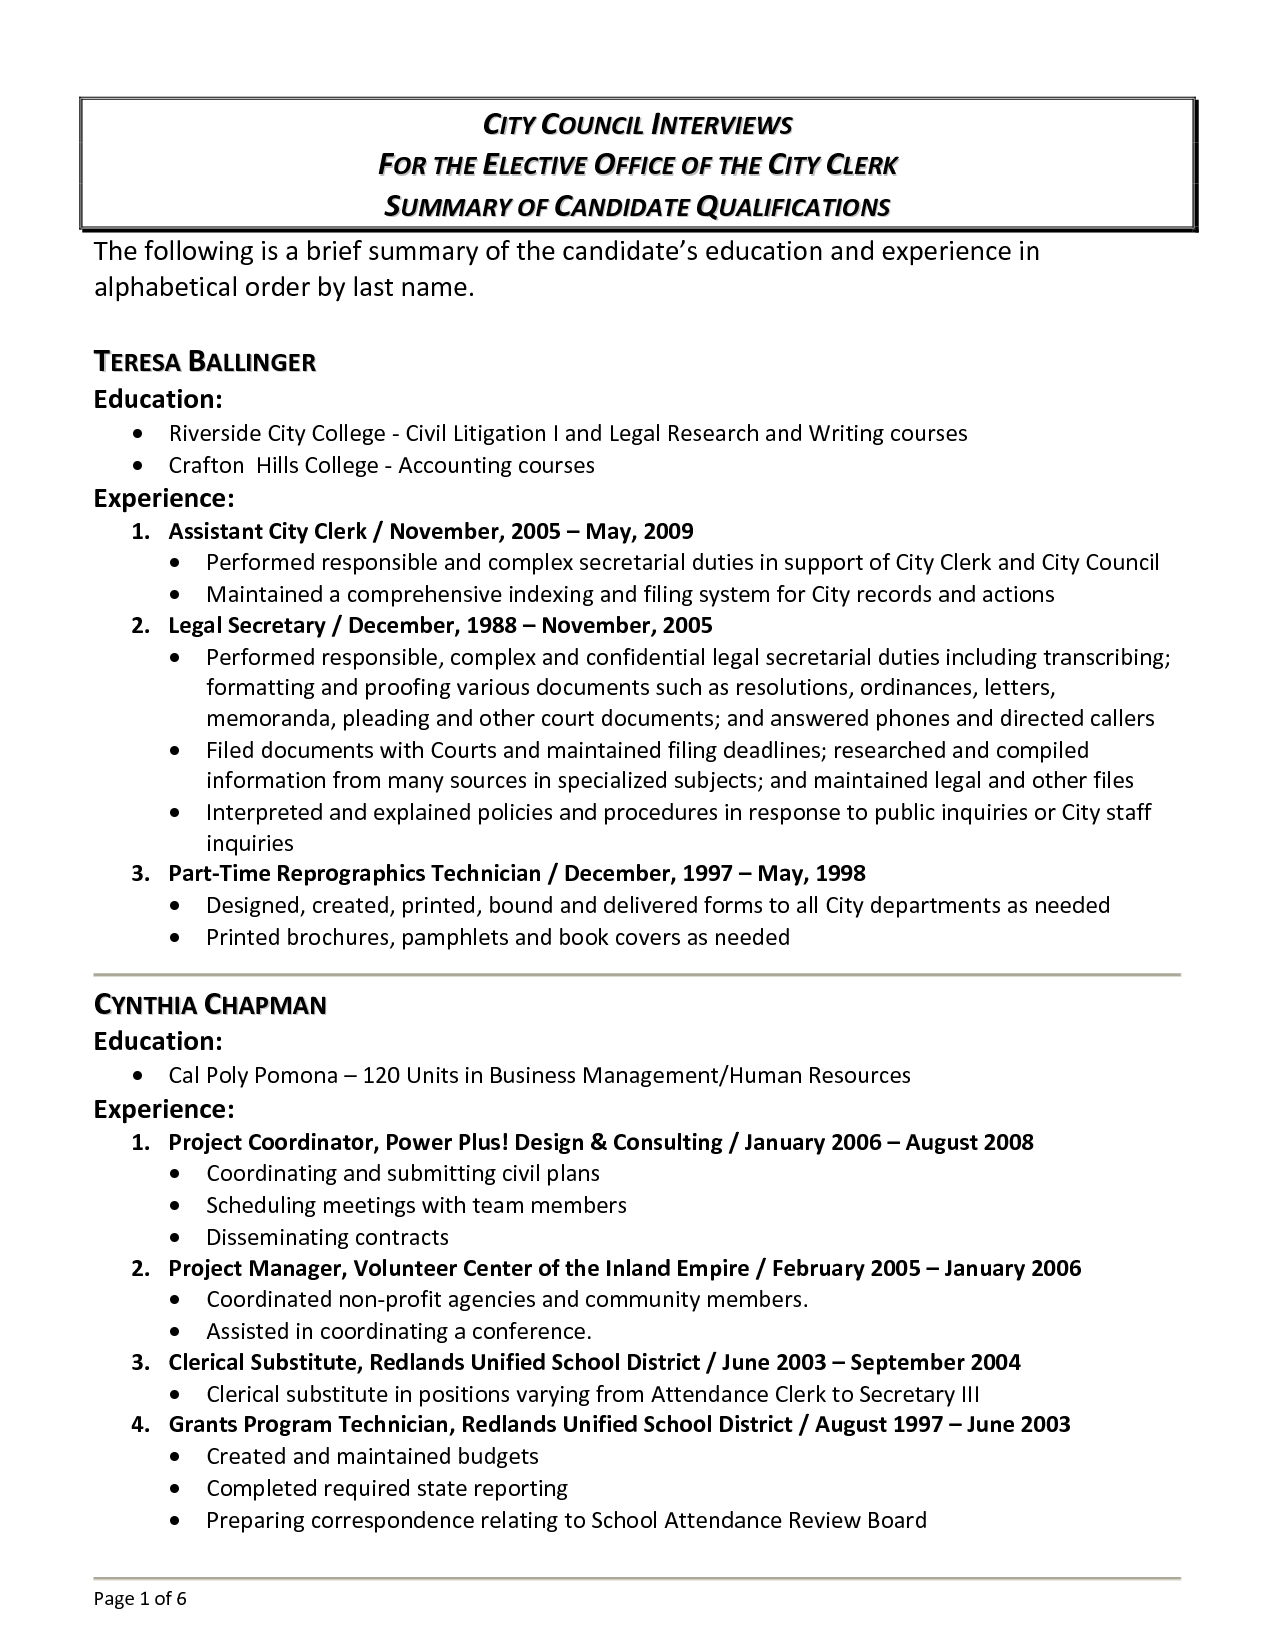 customer service words for resume computer skills resume examples receptionist cover letter samples computer skills resume examples receptionist cover letter samples